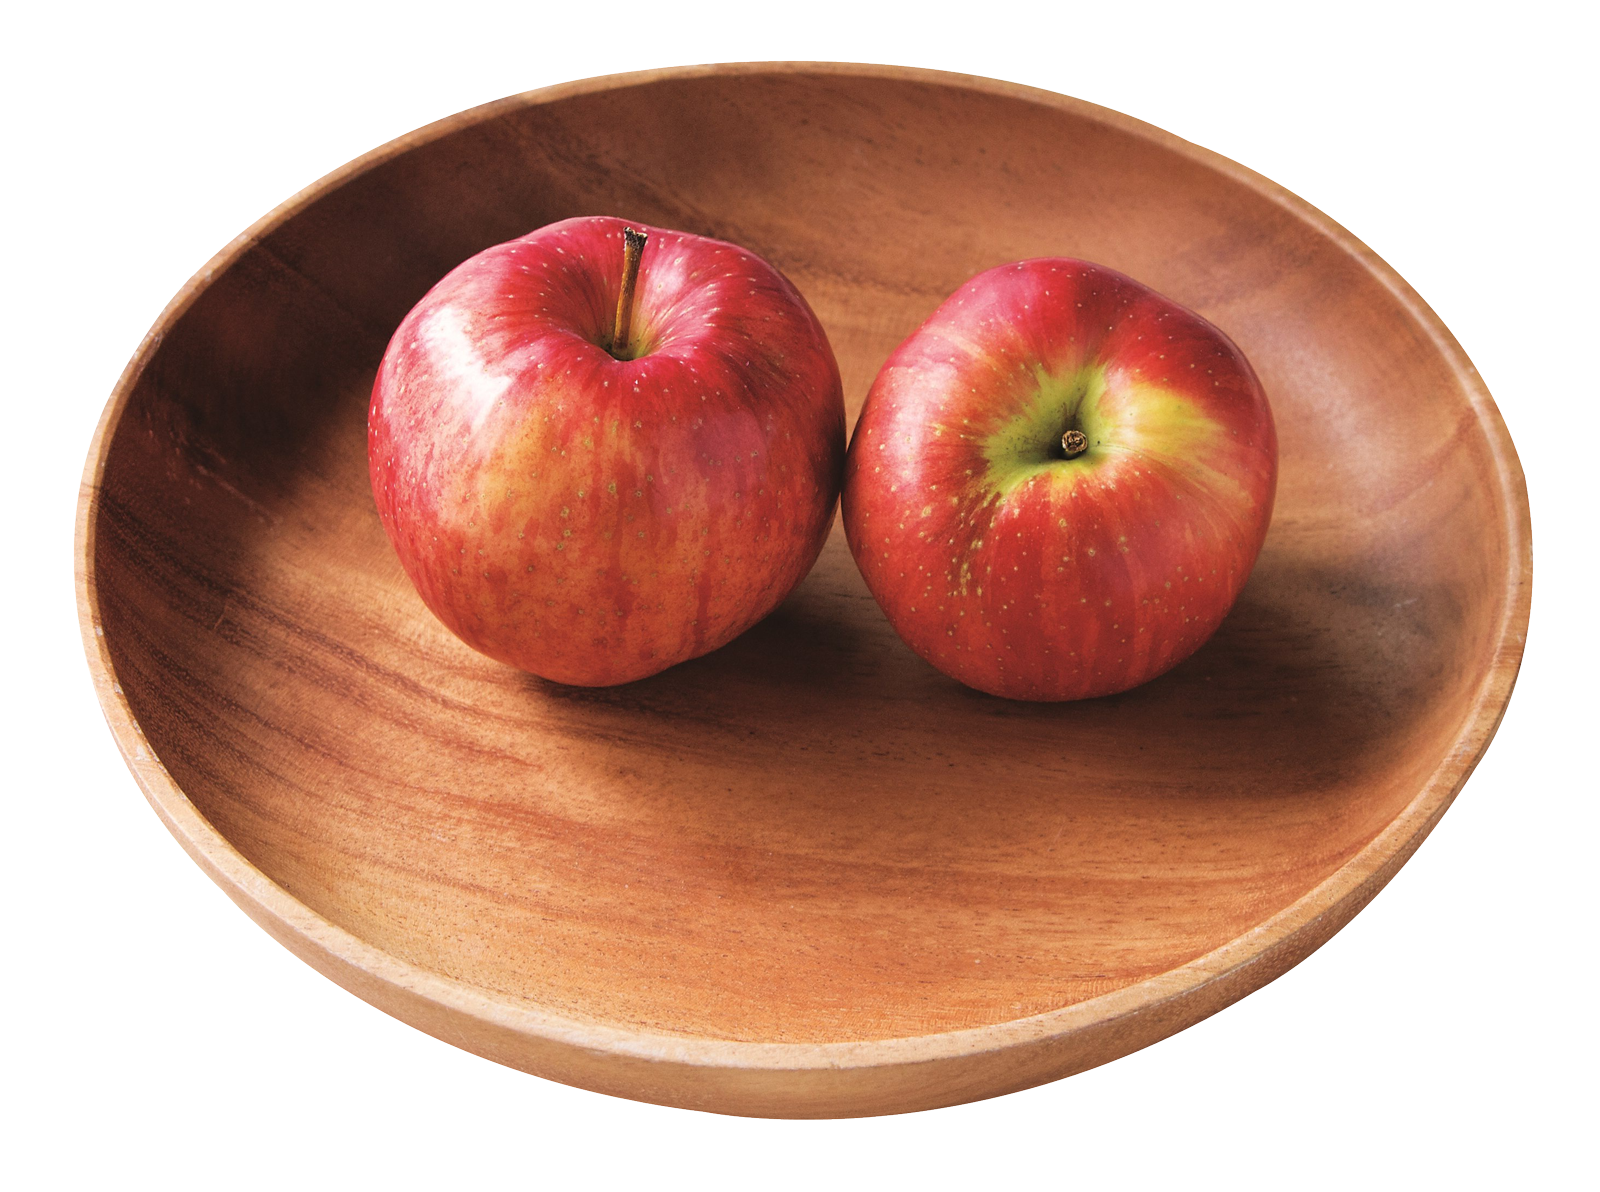 Two Red Apples In Plate Png Image Red Apple Apple Plate Png